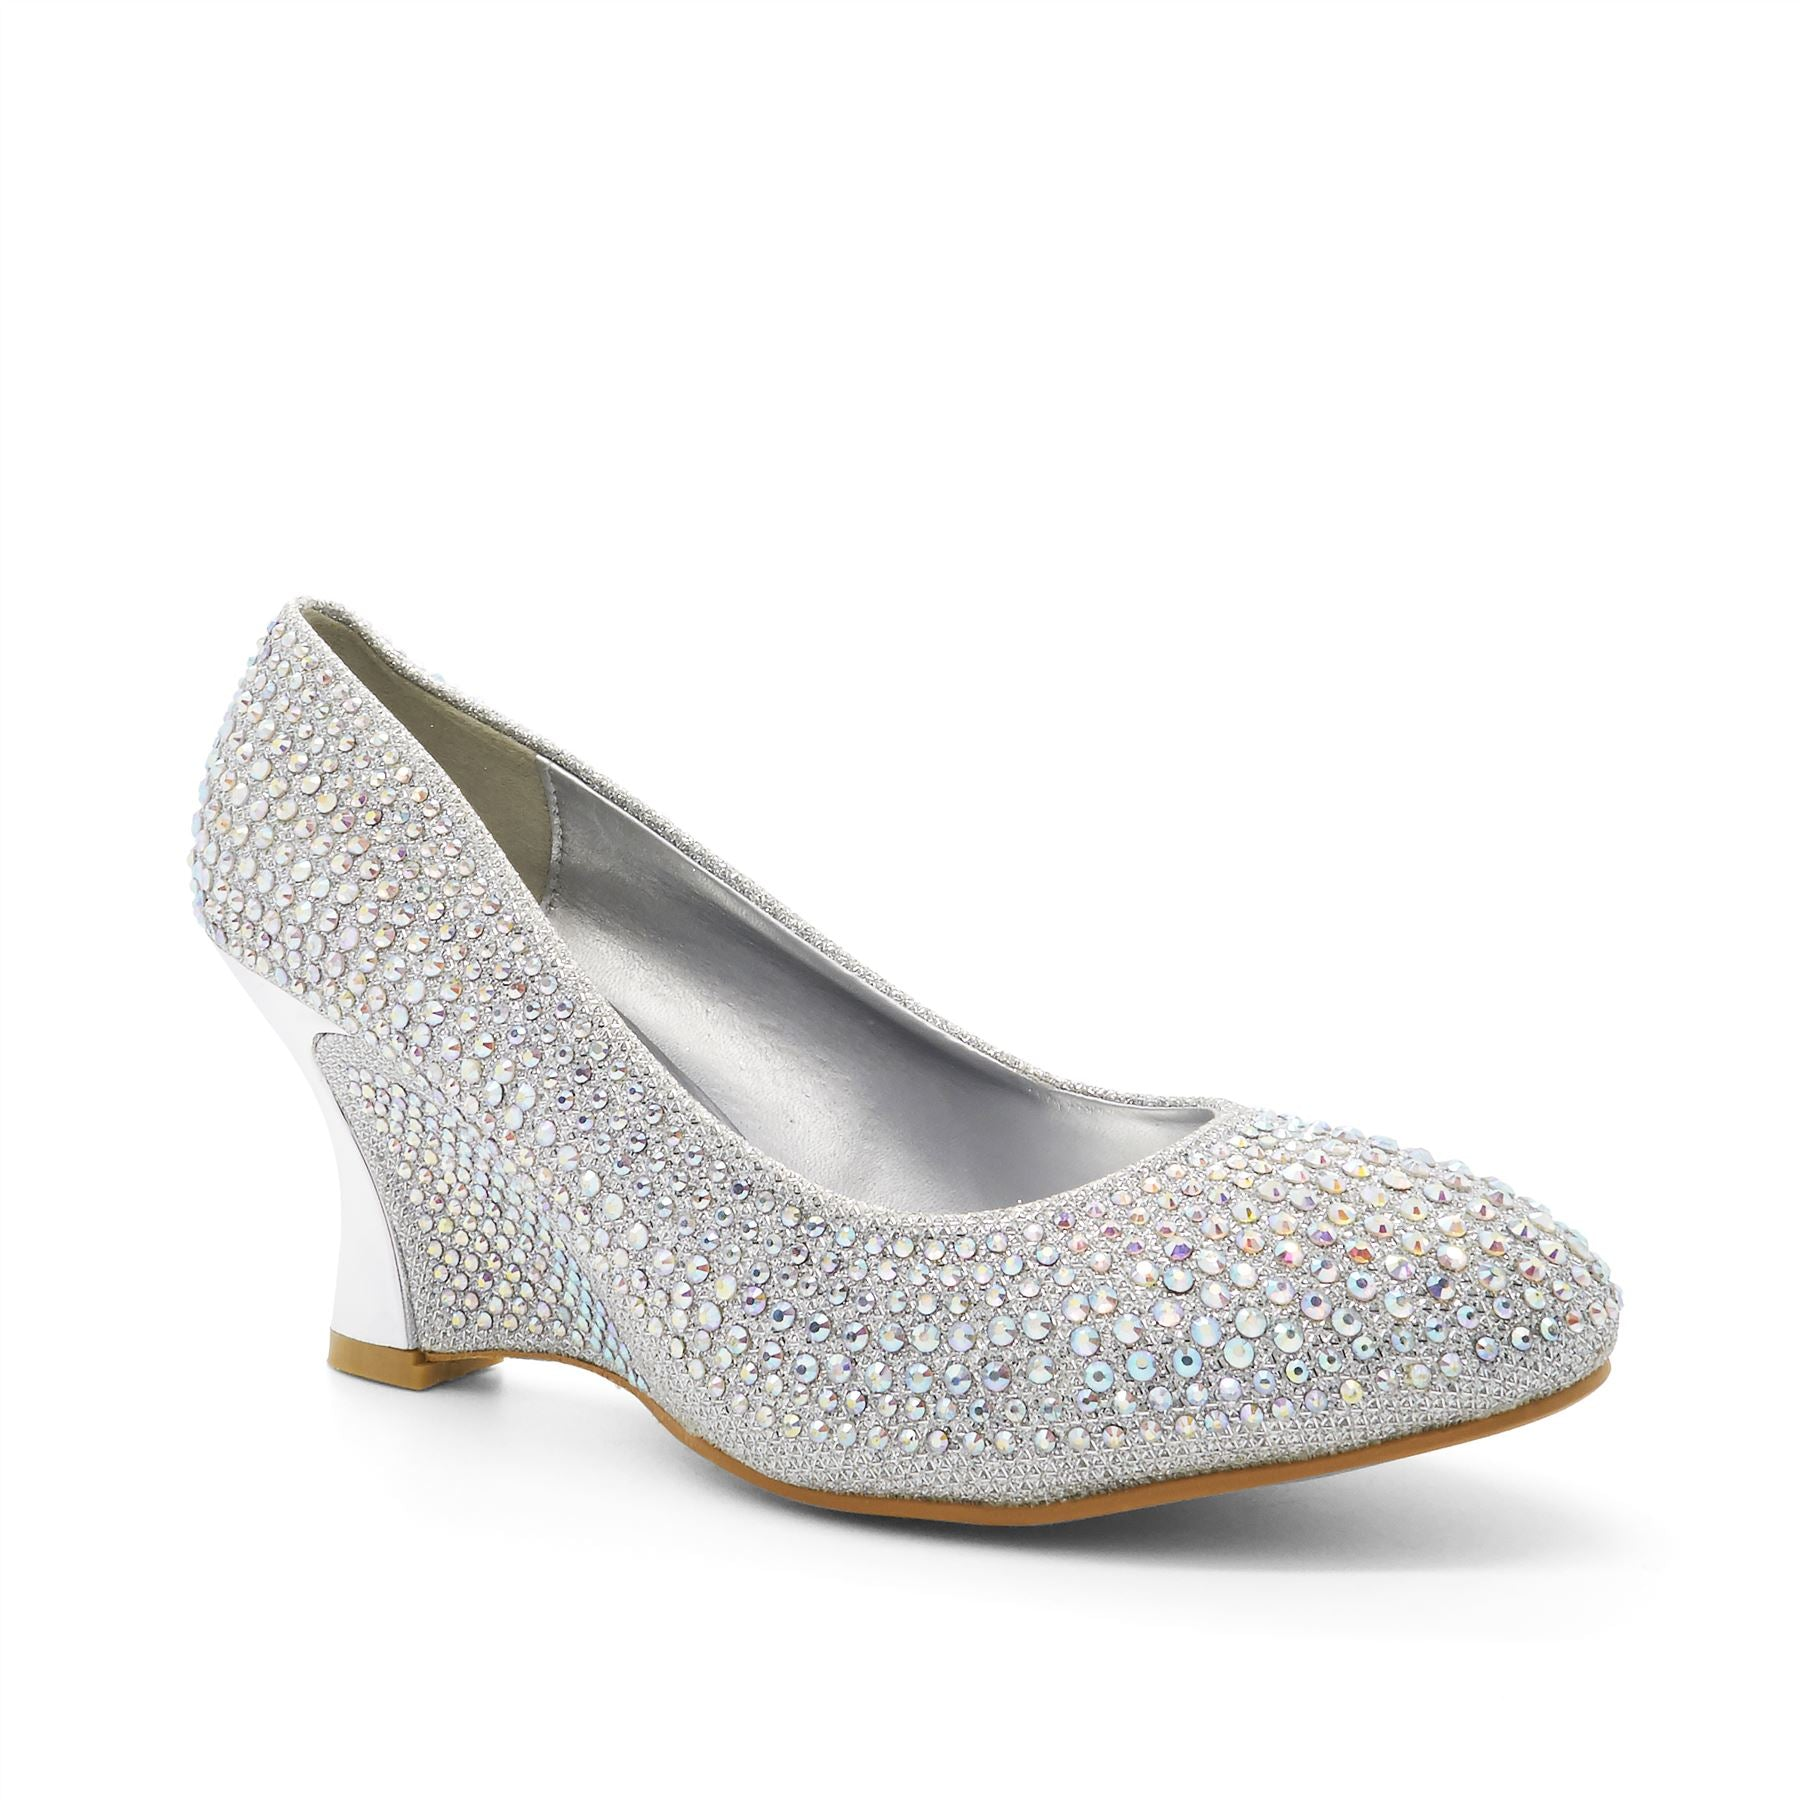 Silver Diamante Almond Toe Wedge Heel